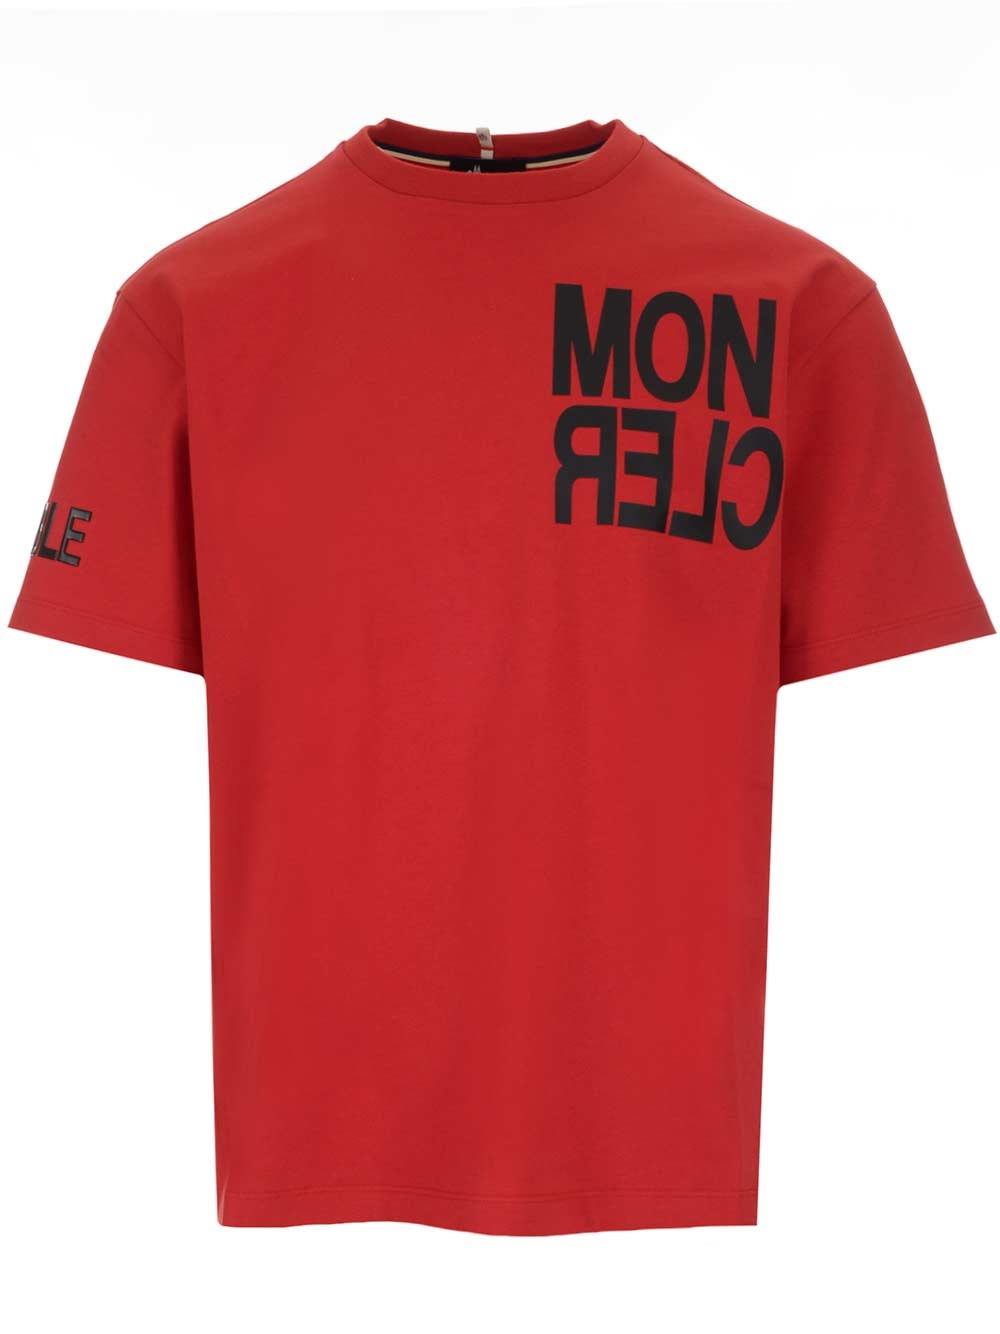 MONCLER GRENOBLE Red T-Shirt With Maxi Logo